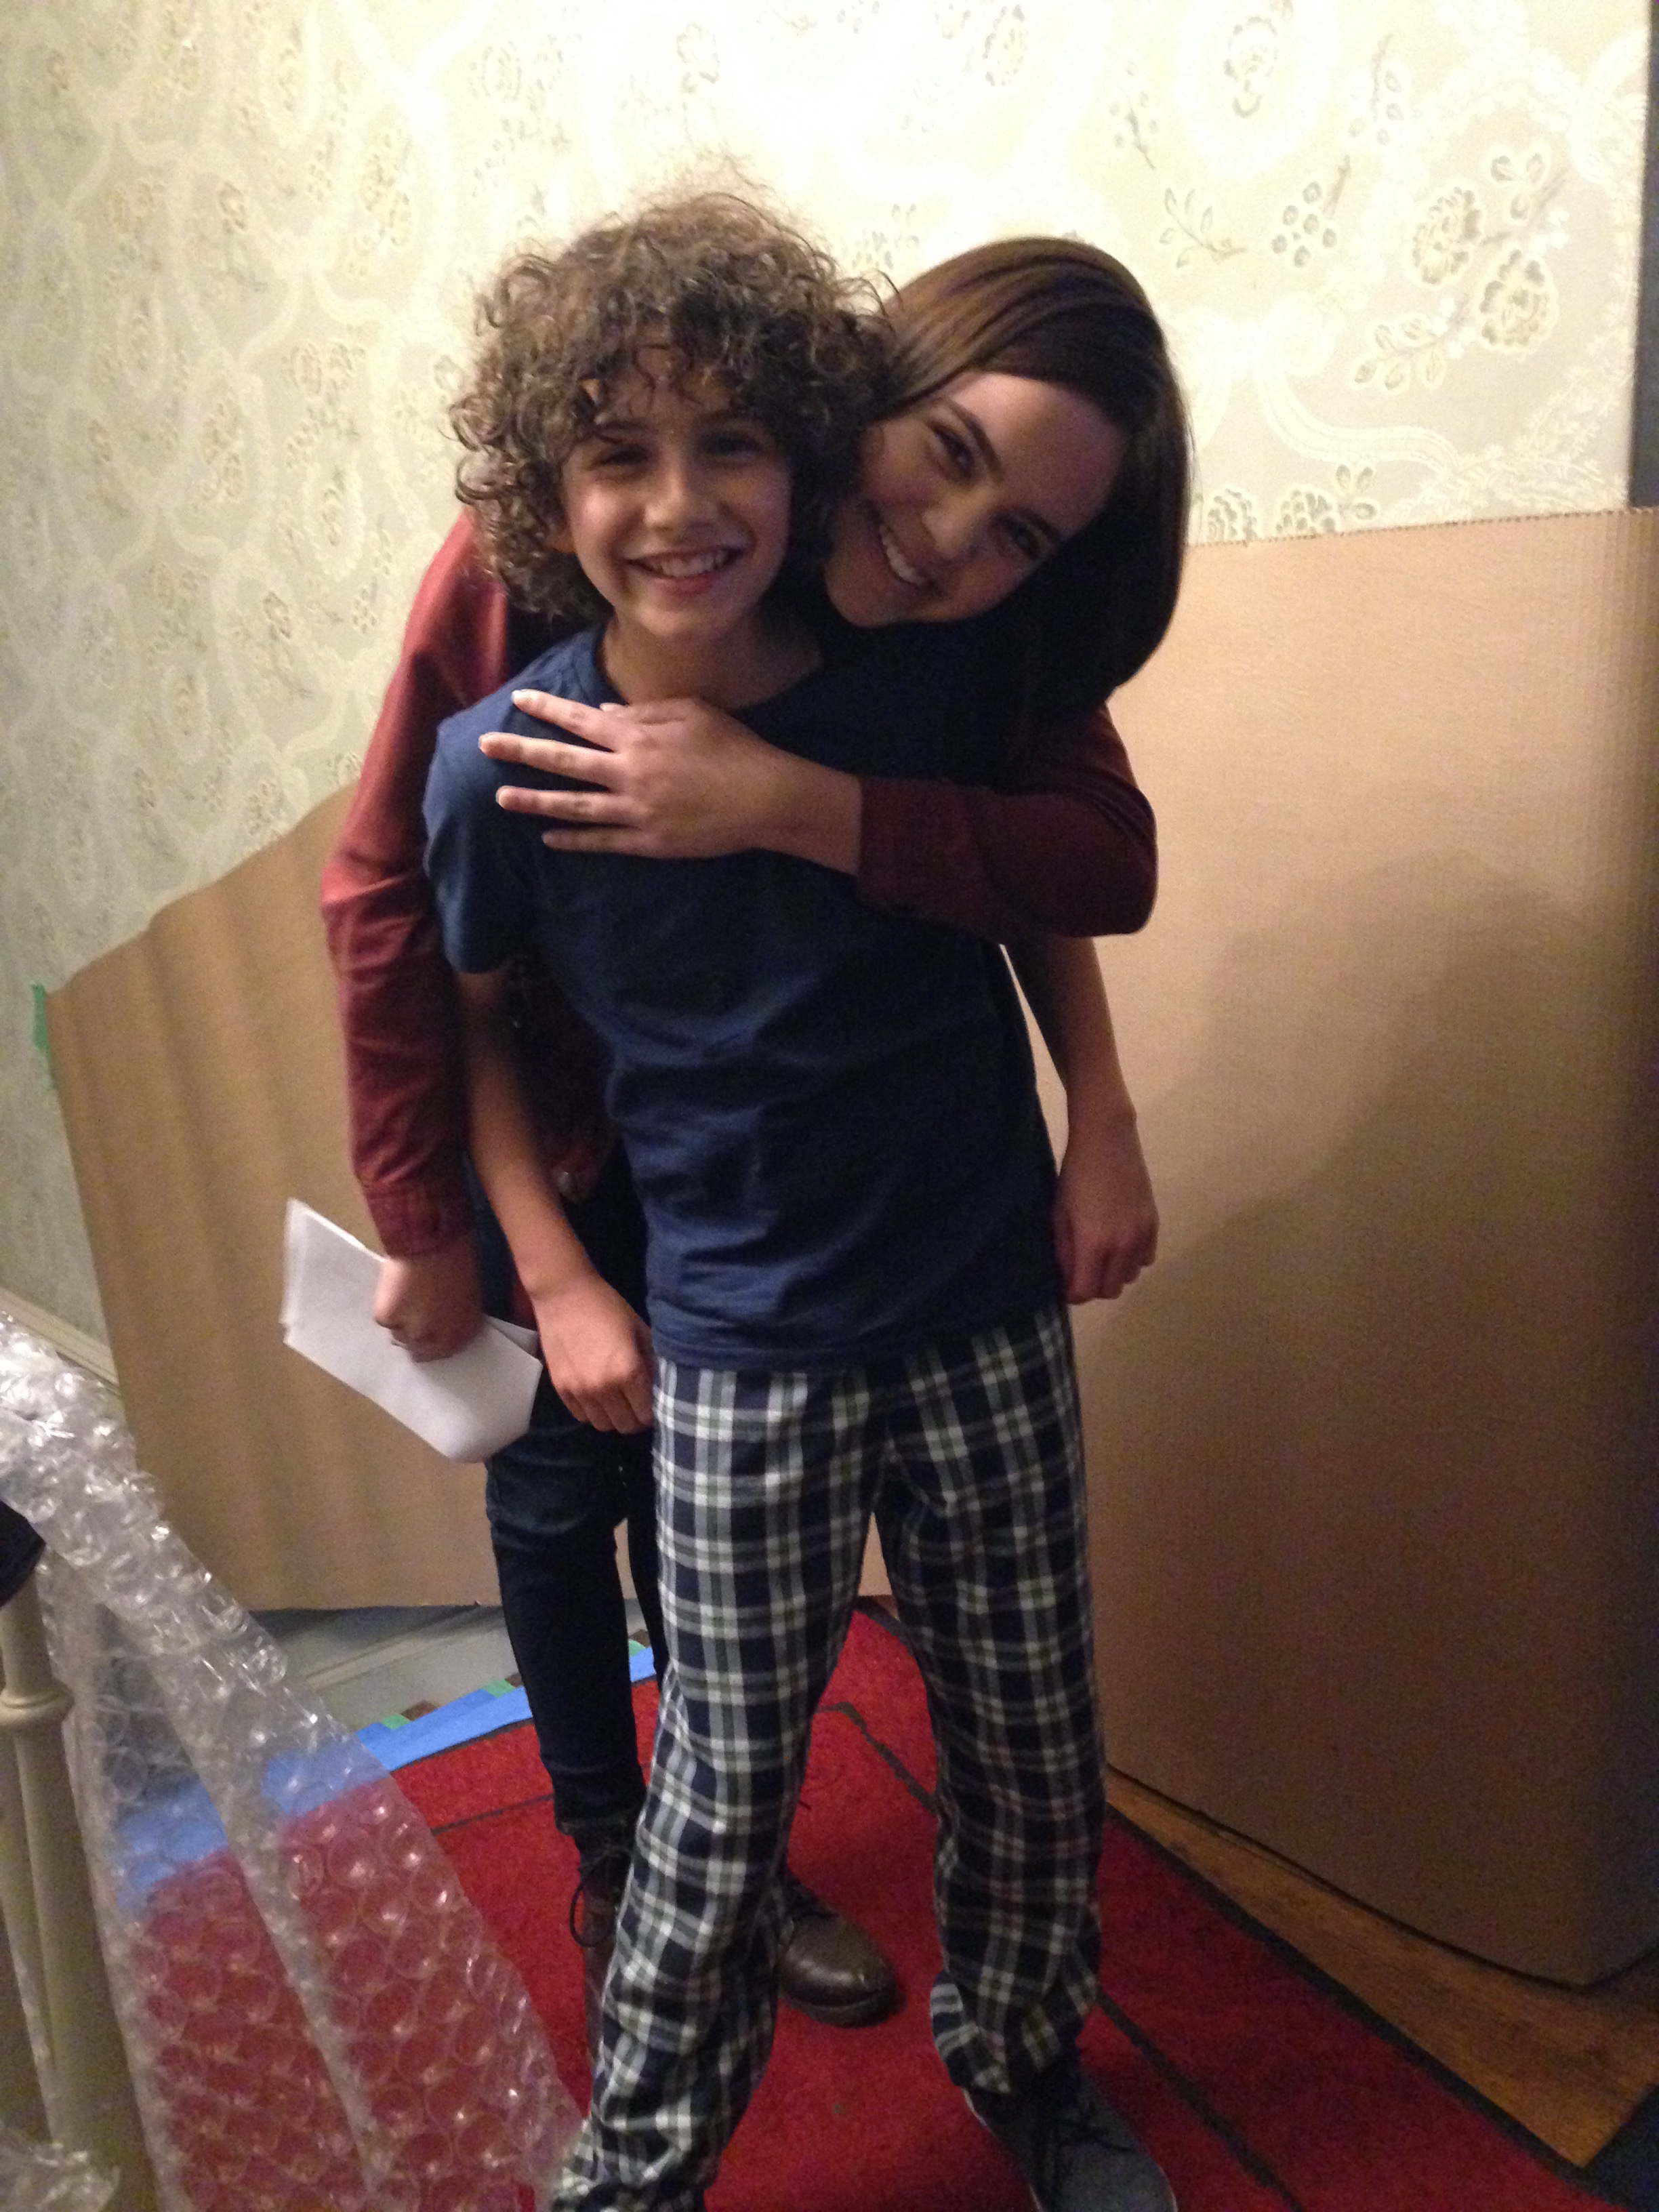 Jonah with Bailee Madison on the set of The Night Before Halloween